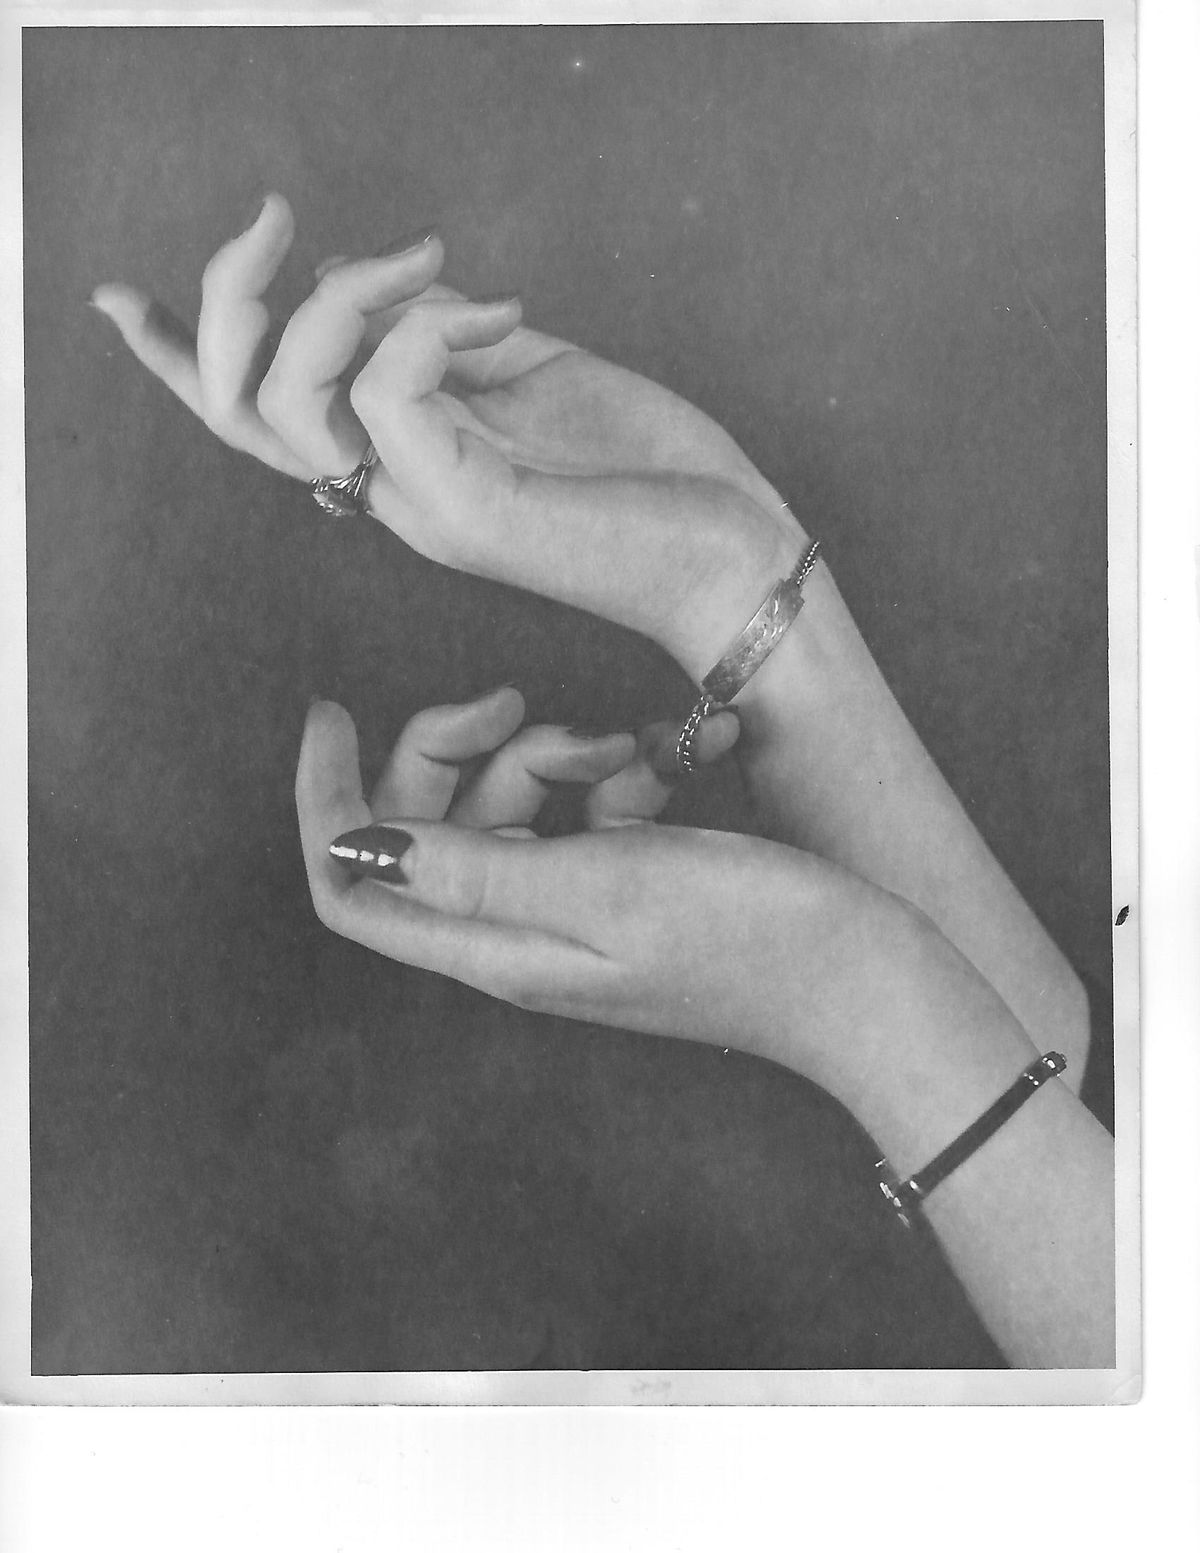 Jerrie Elder's hand-modeling sometimes advertised jewelry. | Supplied photo